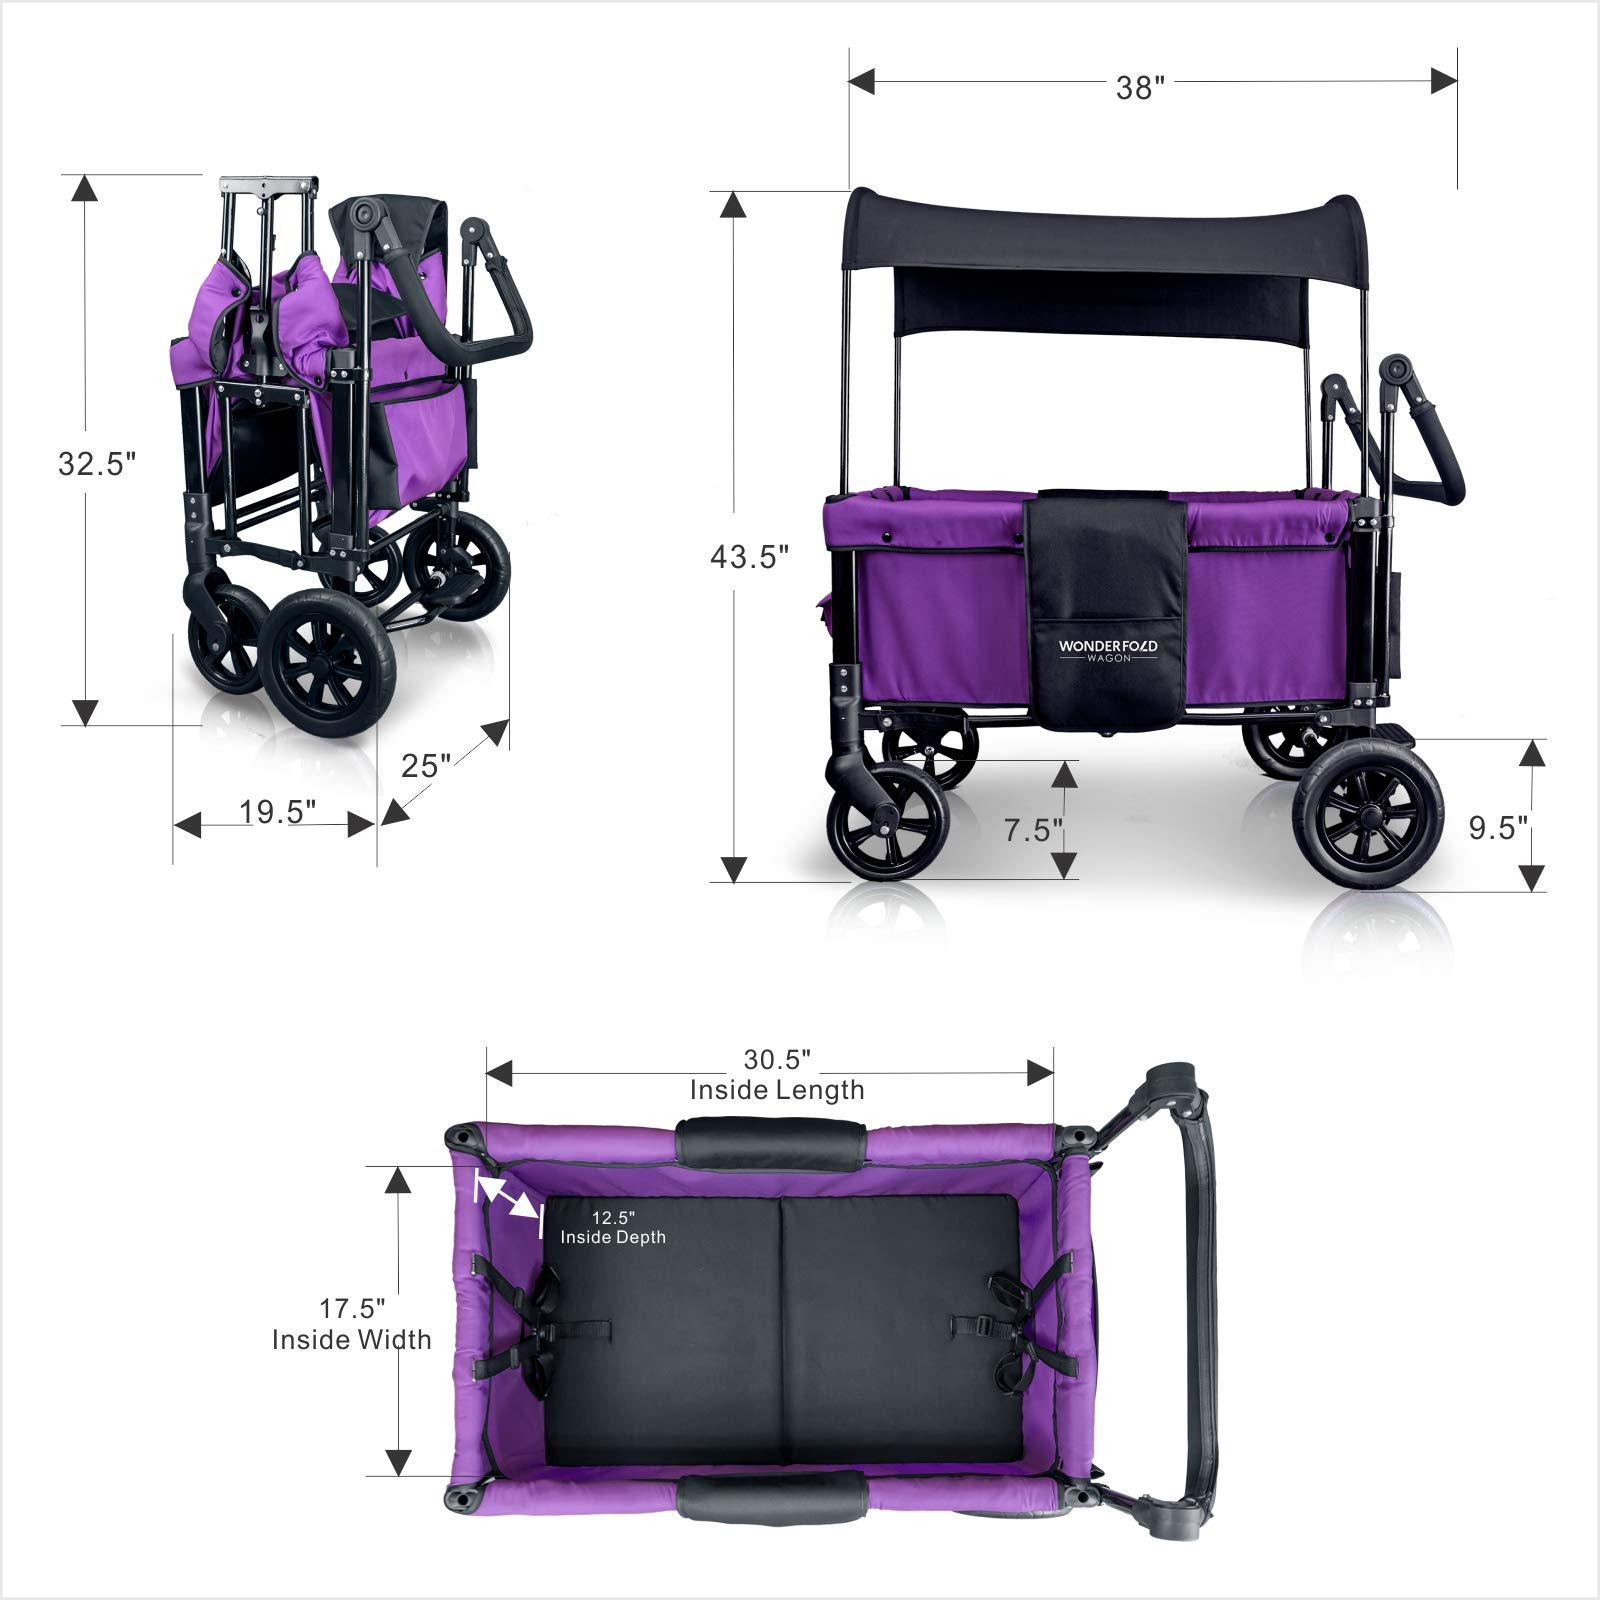 WonderFold Multi-Function 2 Passenger Push Folding Stroller Wagon, Adjustable & Removable Canopy, Double Seats with 5-Point Harness (Cobalt Violet) by WonderFold (Image #2)